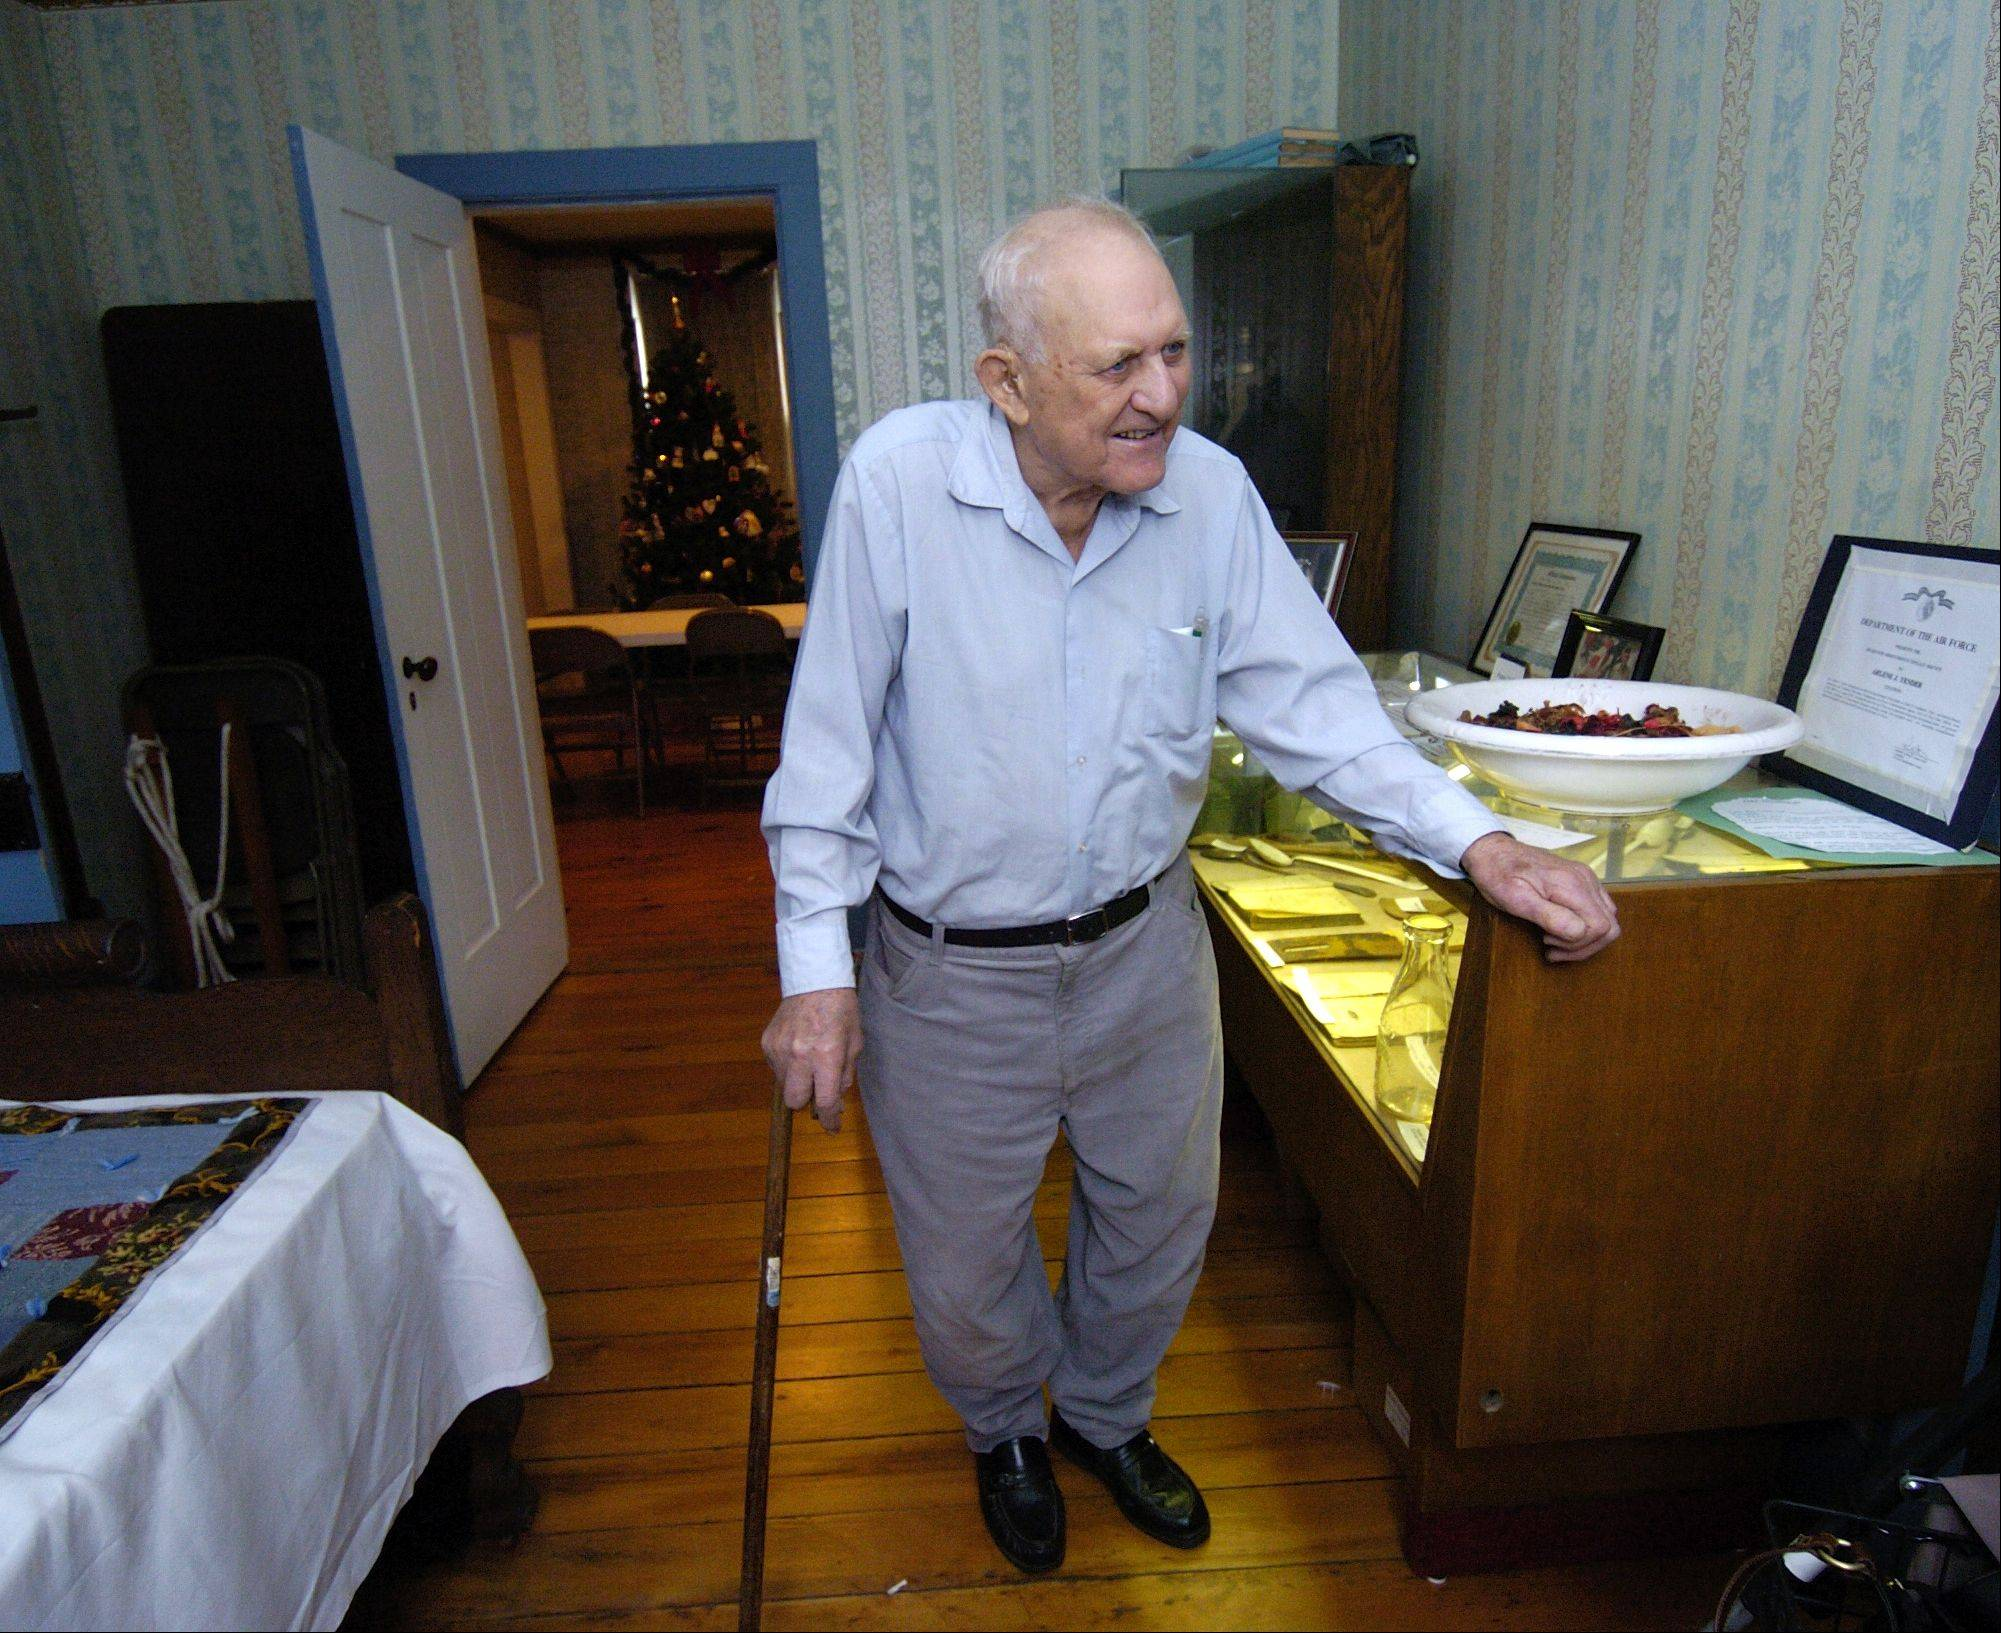 Andy Yender, who passed away Saturday at 93, was born in this bedroom of the Netzley-Yender House, now part of the Museums at Lisle Station Park. Each May, Yender gave third-graders from the surrounding area tours of the historic farmhouse.